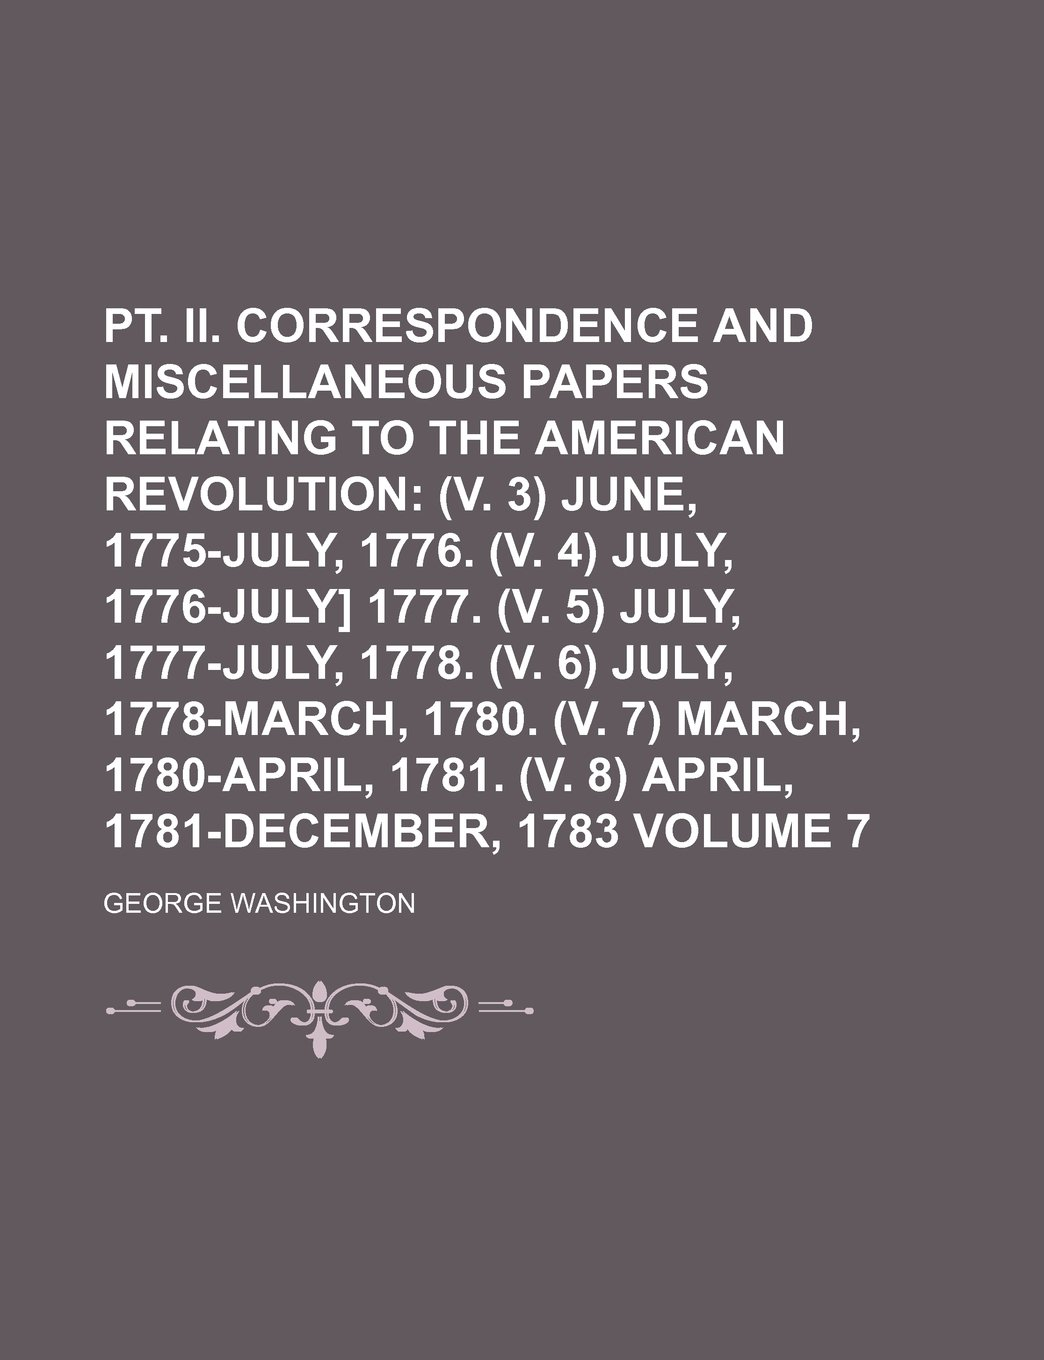 pt  II  Correspondence and miscellaneous papers relating to the